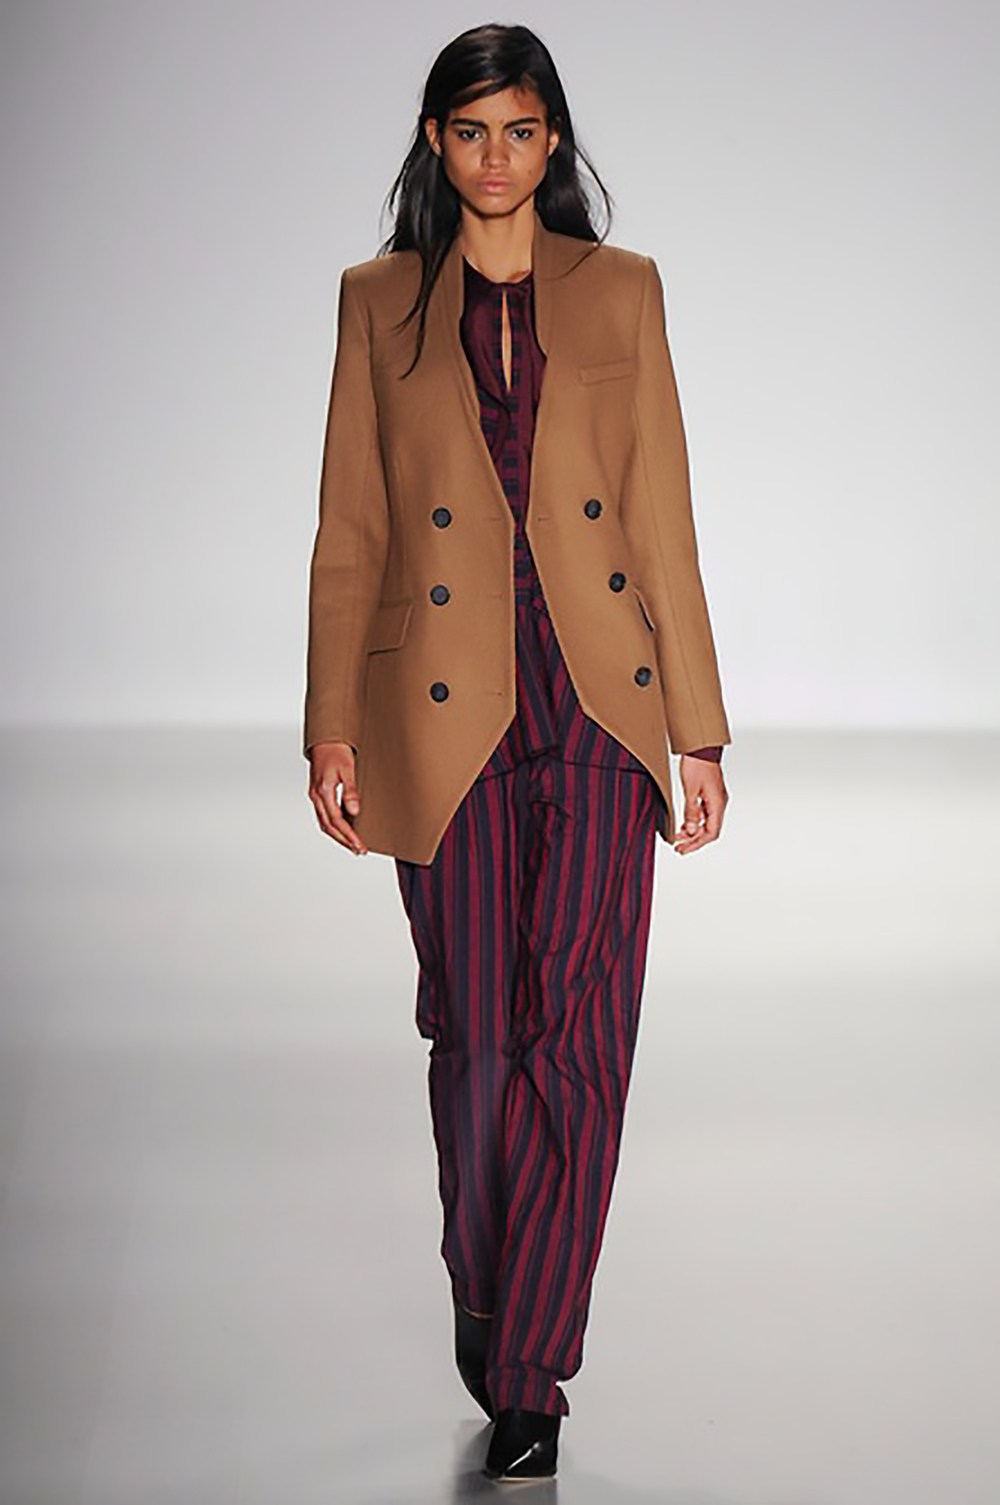 style.com richard chai love fall 2014 rtw look 32 fall 2014 1500.jpg